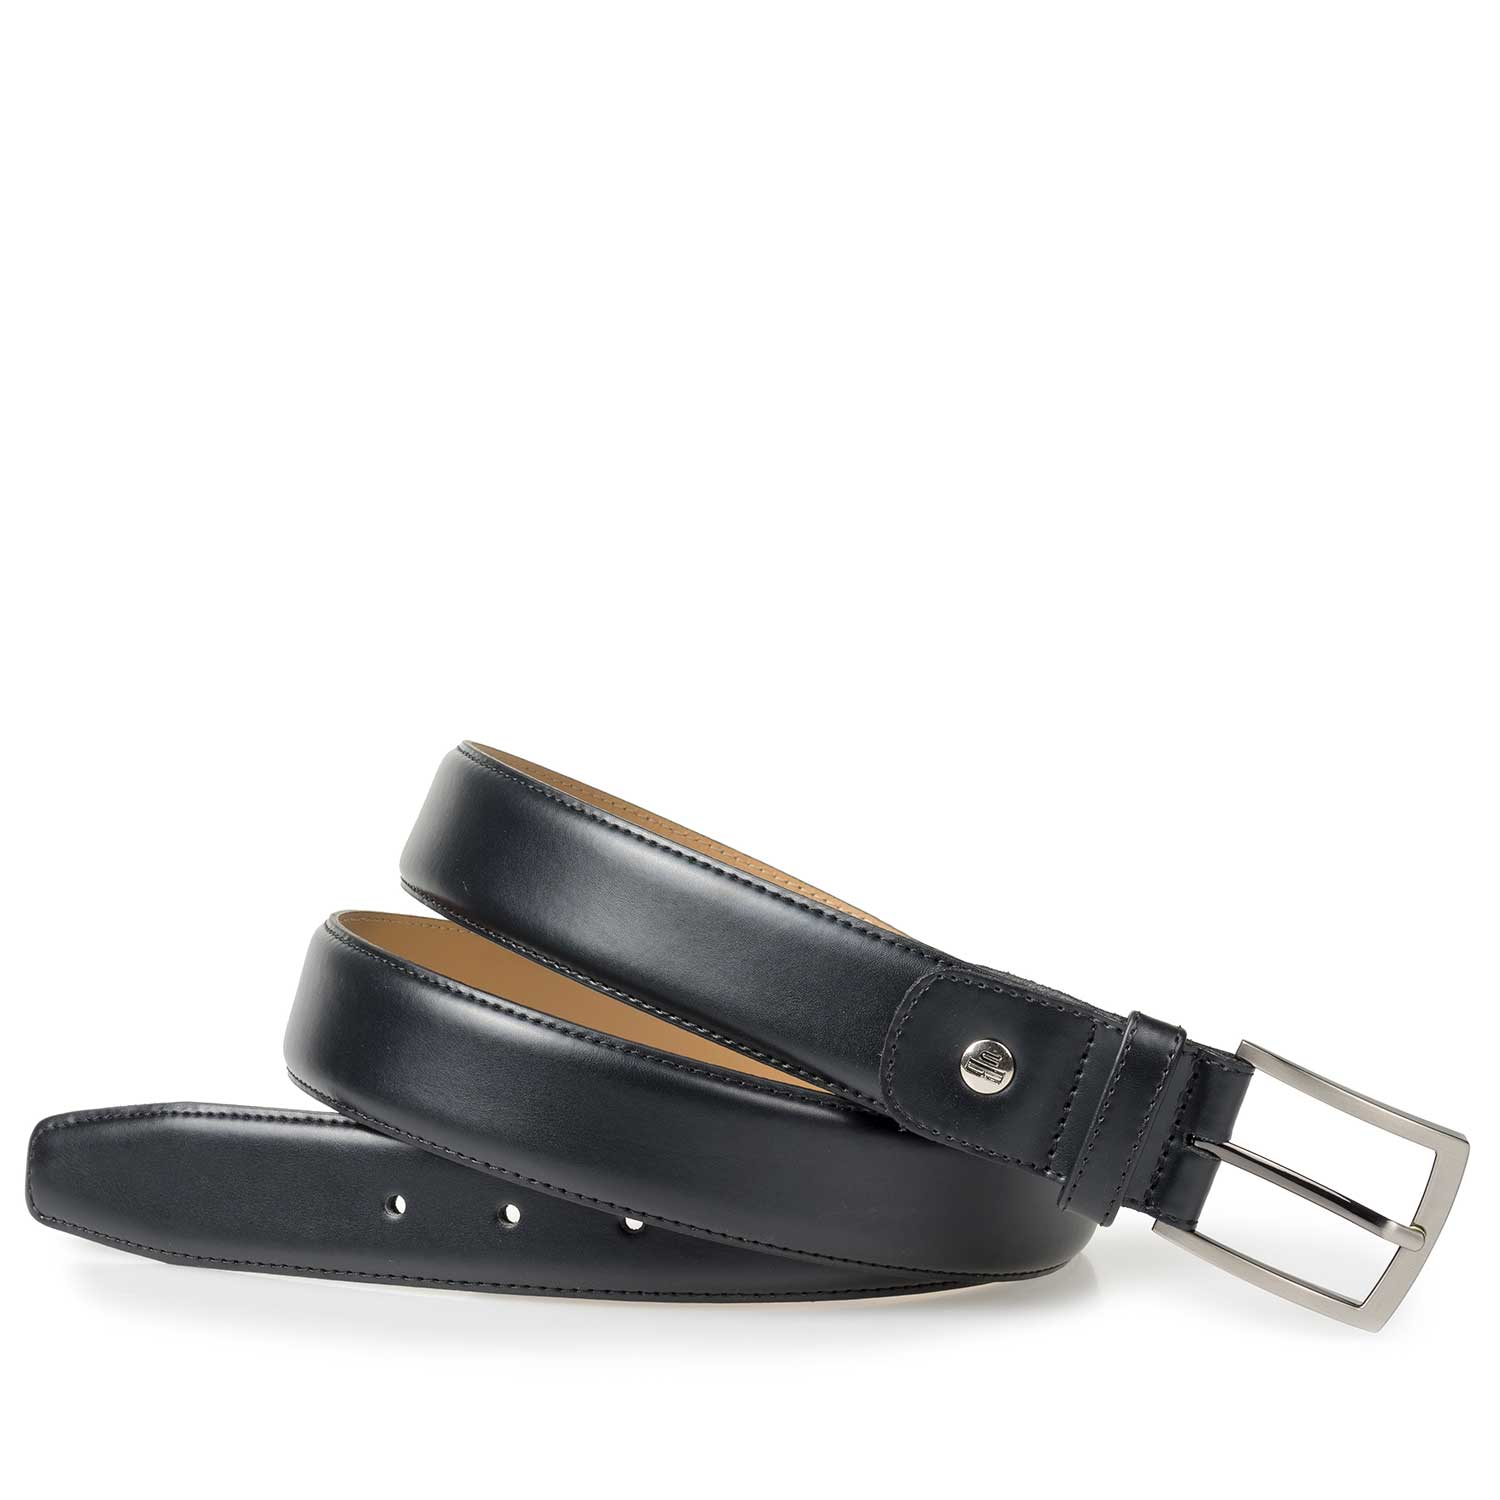 75076/01 - Black calf leather belt